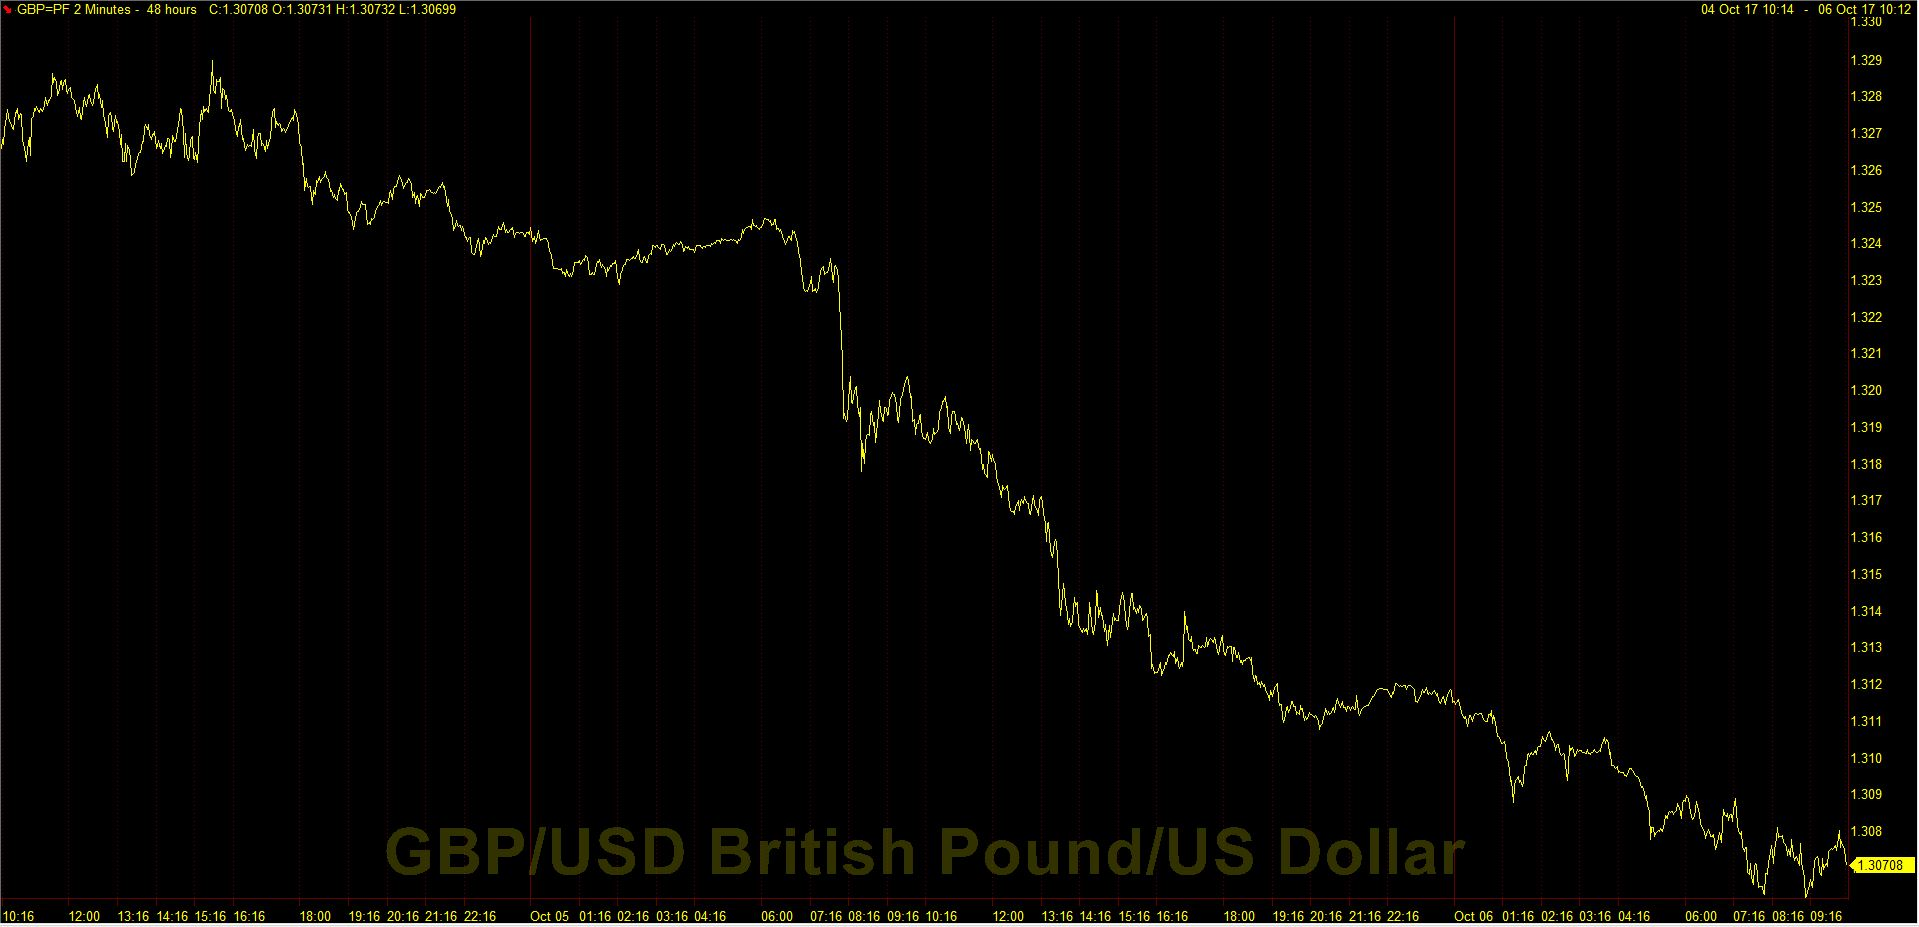 Sterling versus the US dollar over the last 48 hours